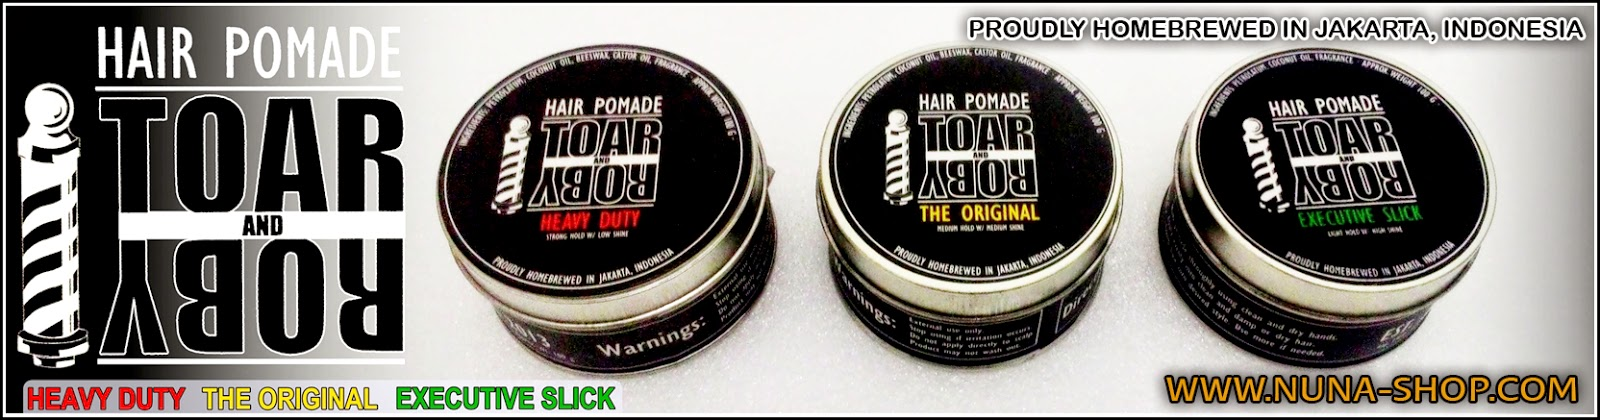 Toar And Roby Pomade - TnR Heavy Duty Pomade - TnR The Original Pomade - TnR Heavy Executive Slick